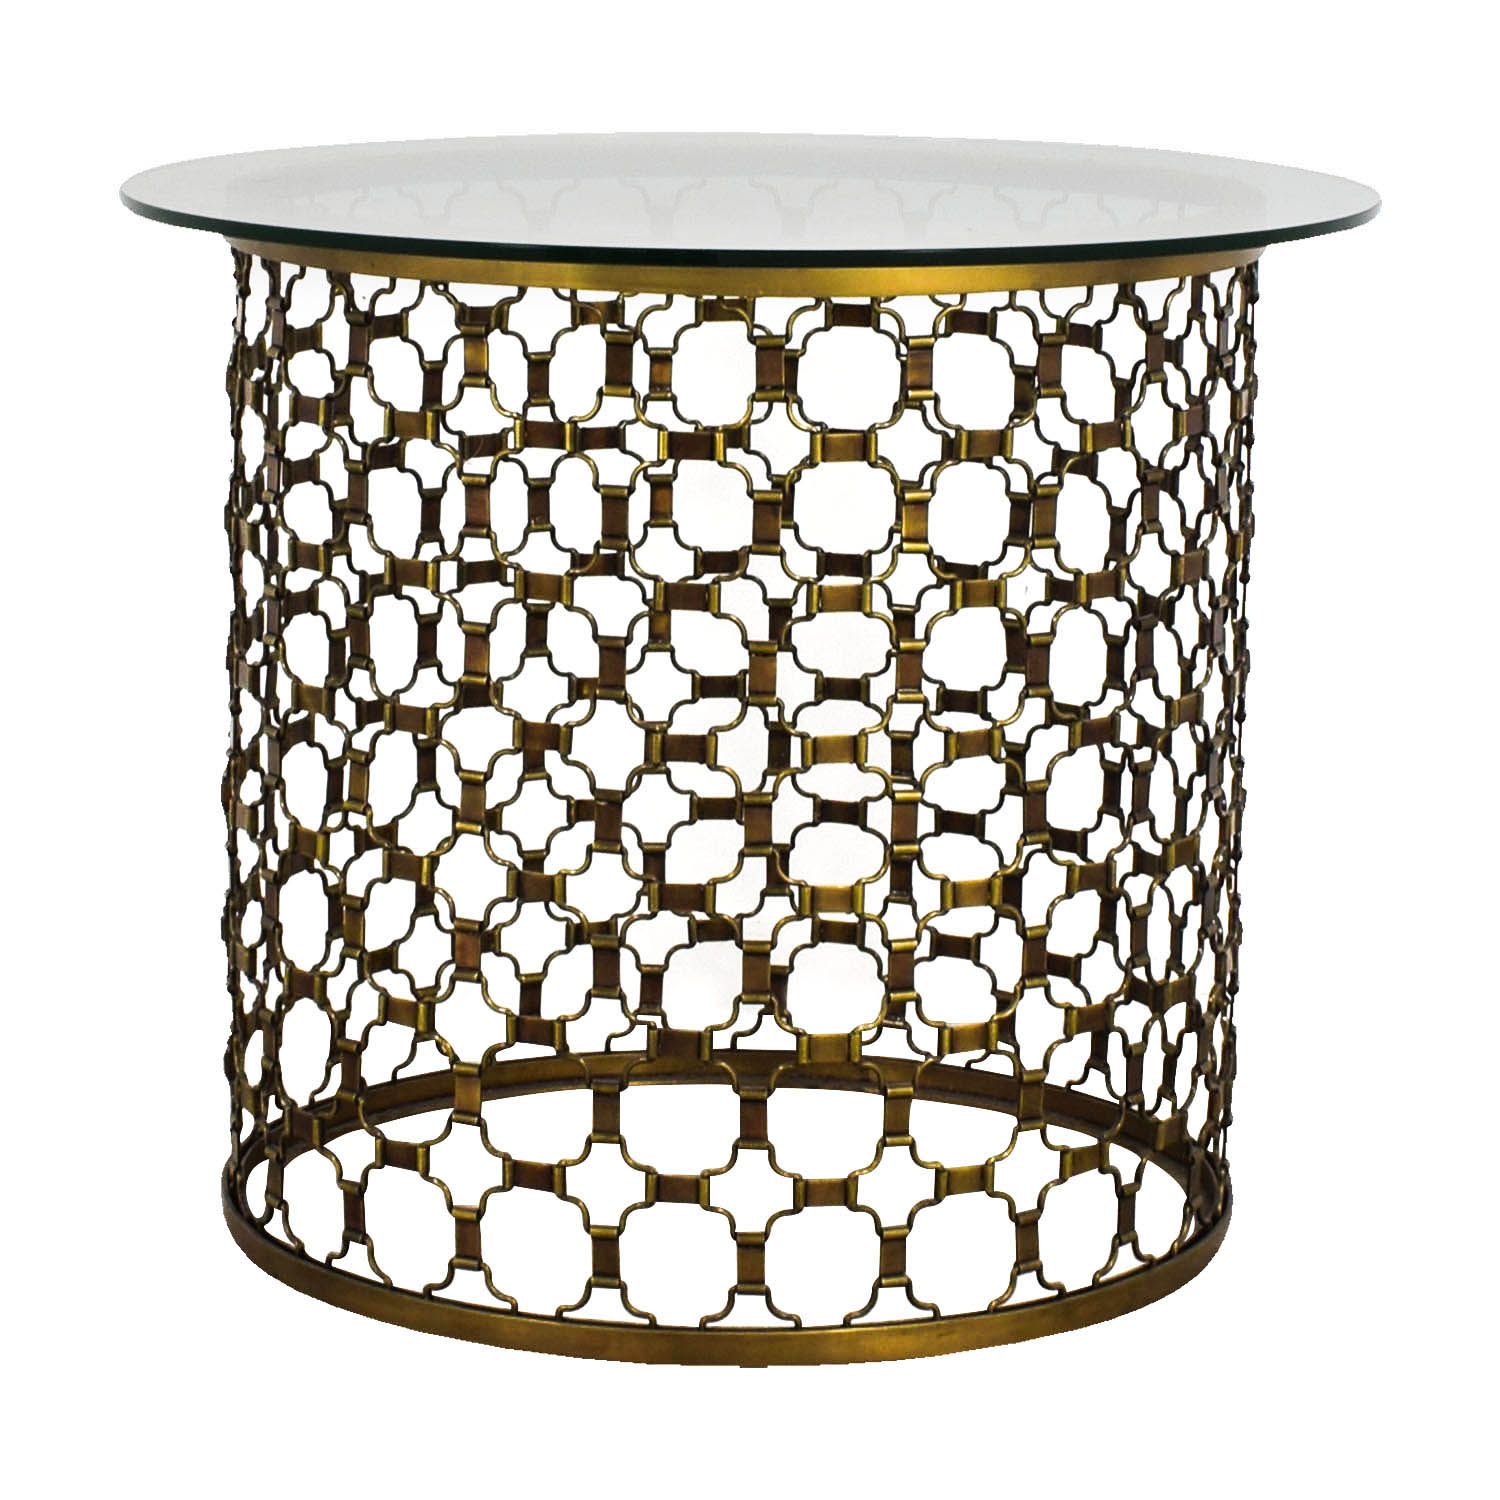 shop Naomi Naomi Round Brass and Glass Dining Table online